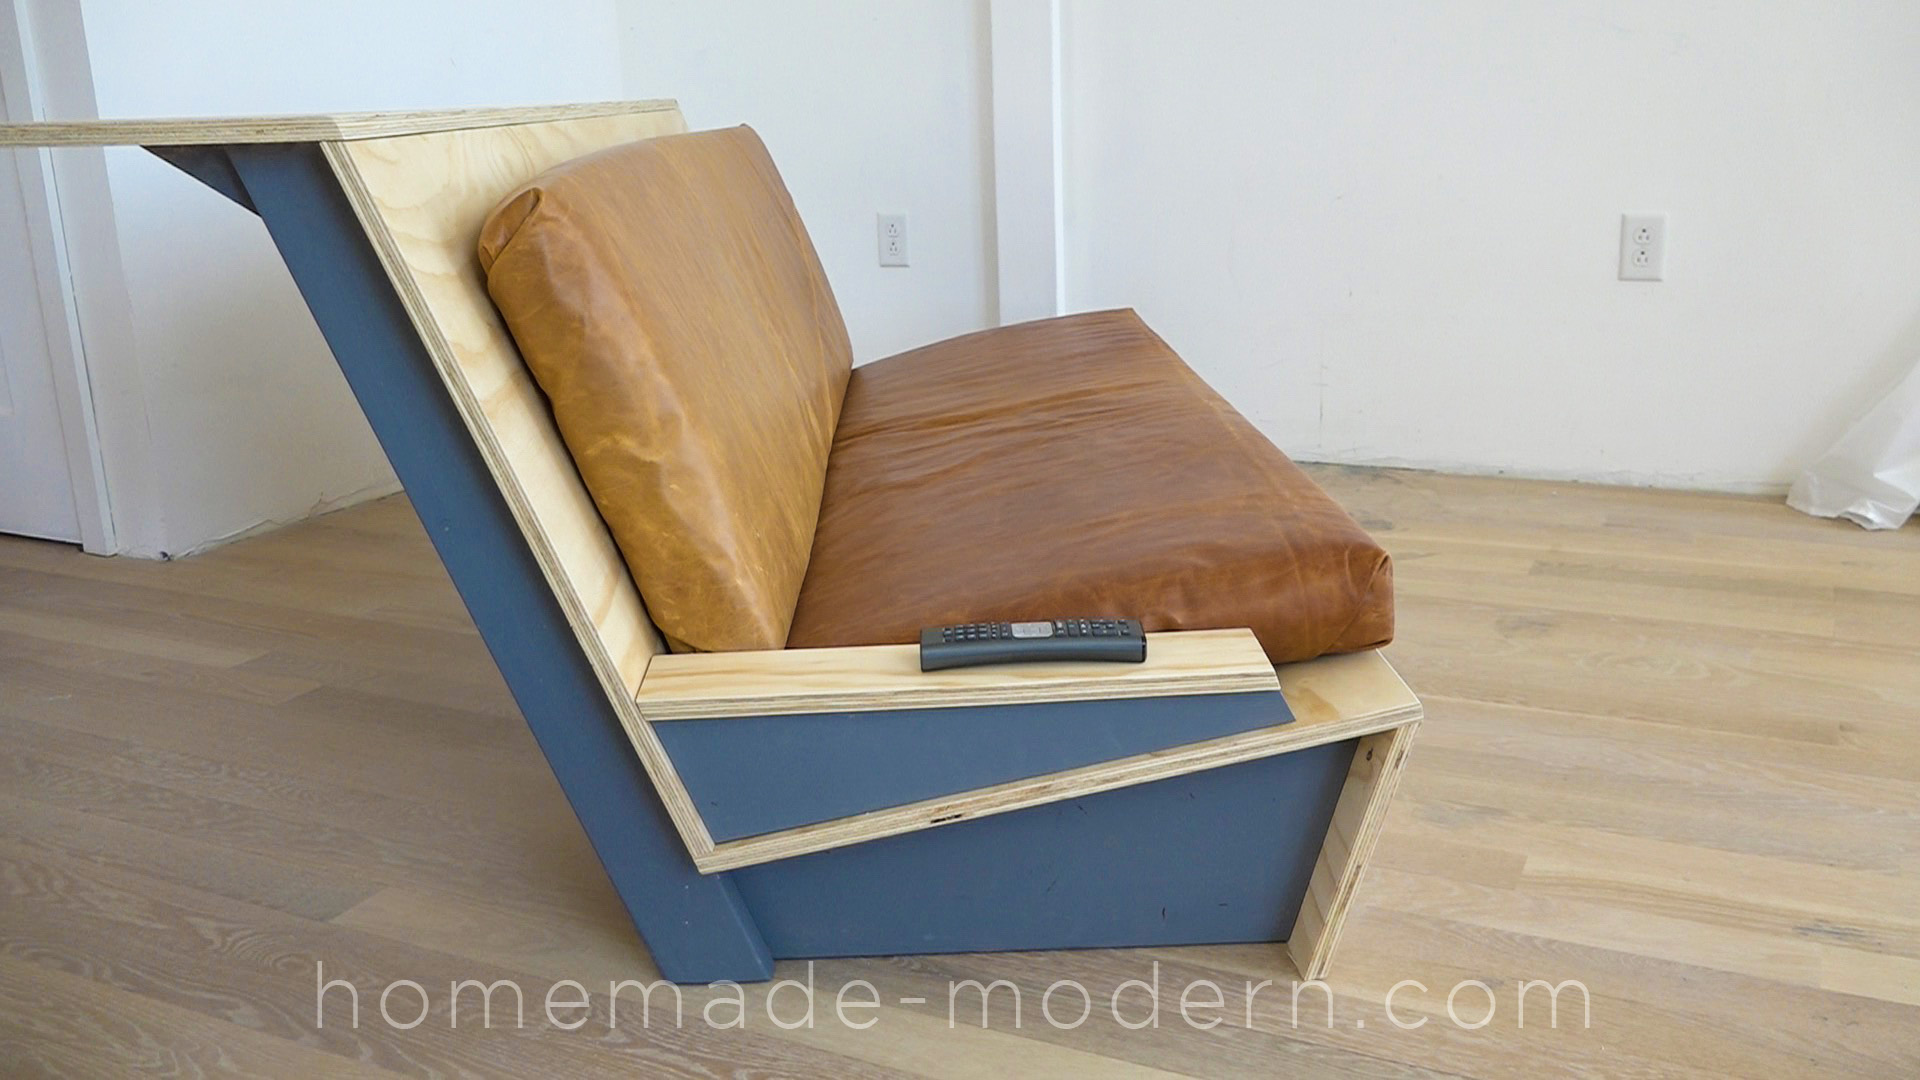 Homemade modern ep108 zig zag sofa for Homemade diy